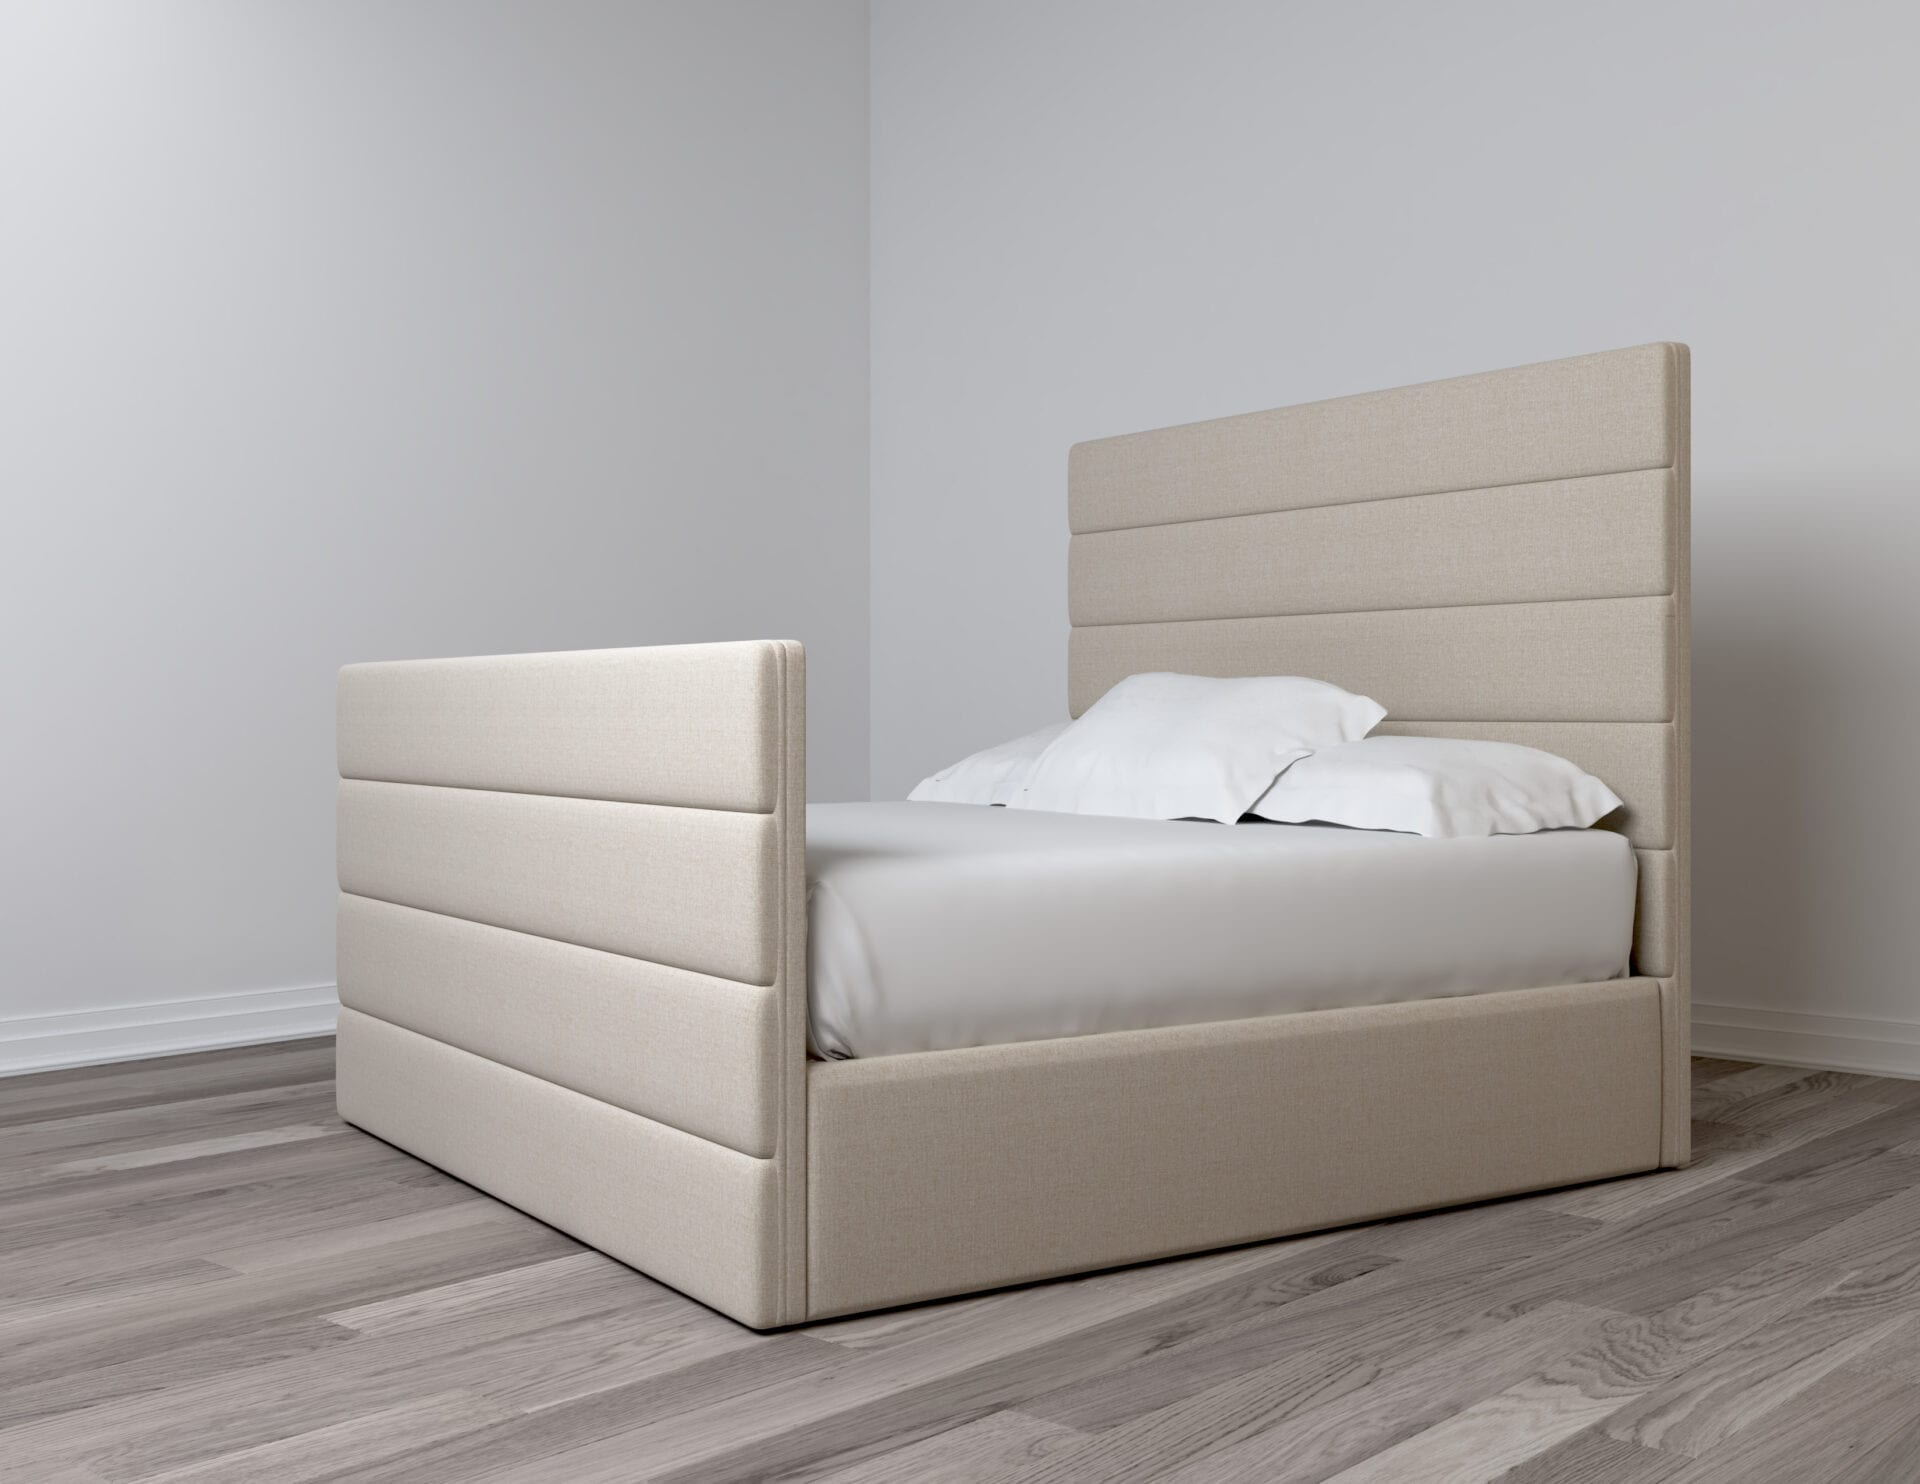 Spazio - Wall mounted upholstered, luxury headboard with custom upholstered wall panels - Custom luxury, upholstered beds with high end, bedroom textiles   Blend Home Furnishings